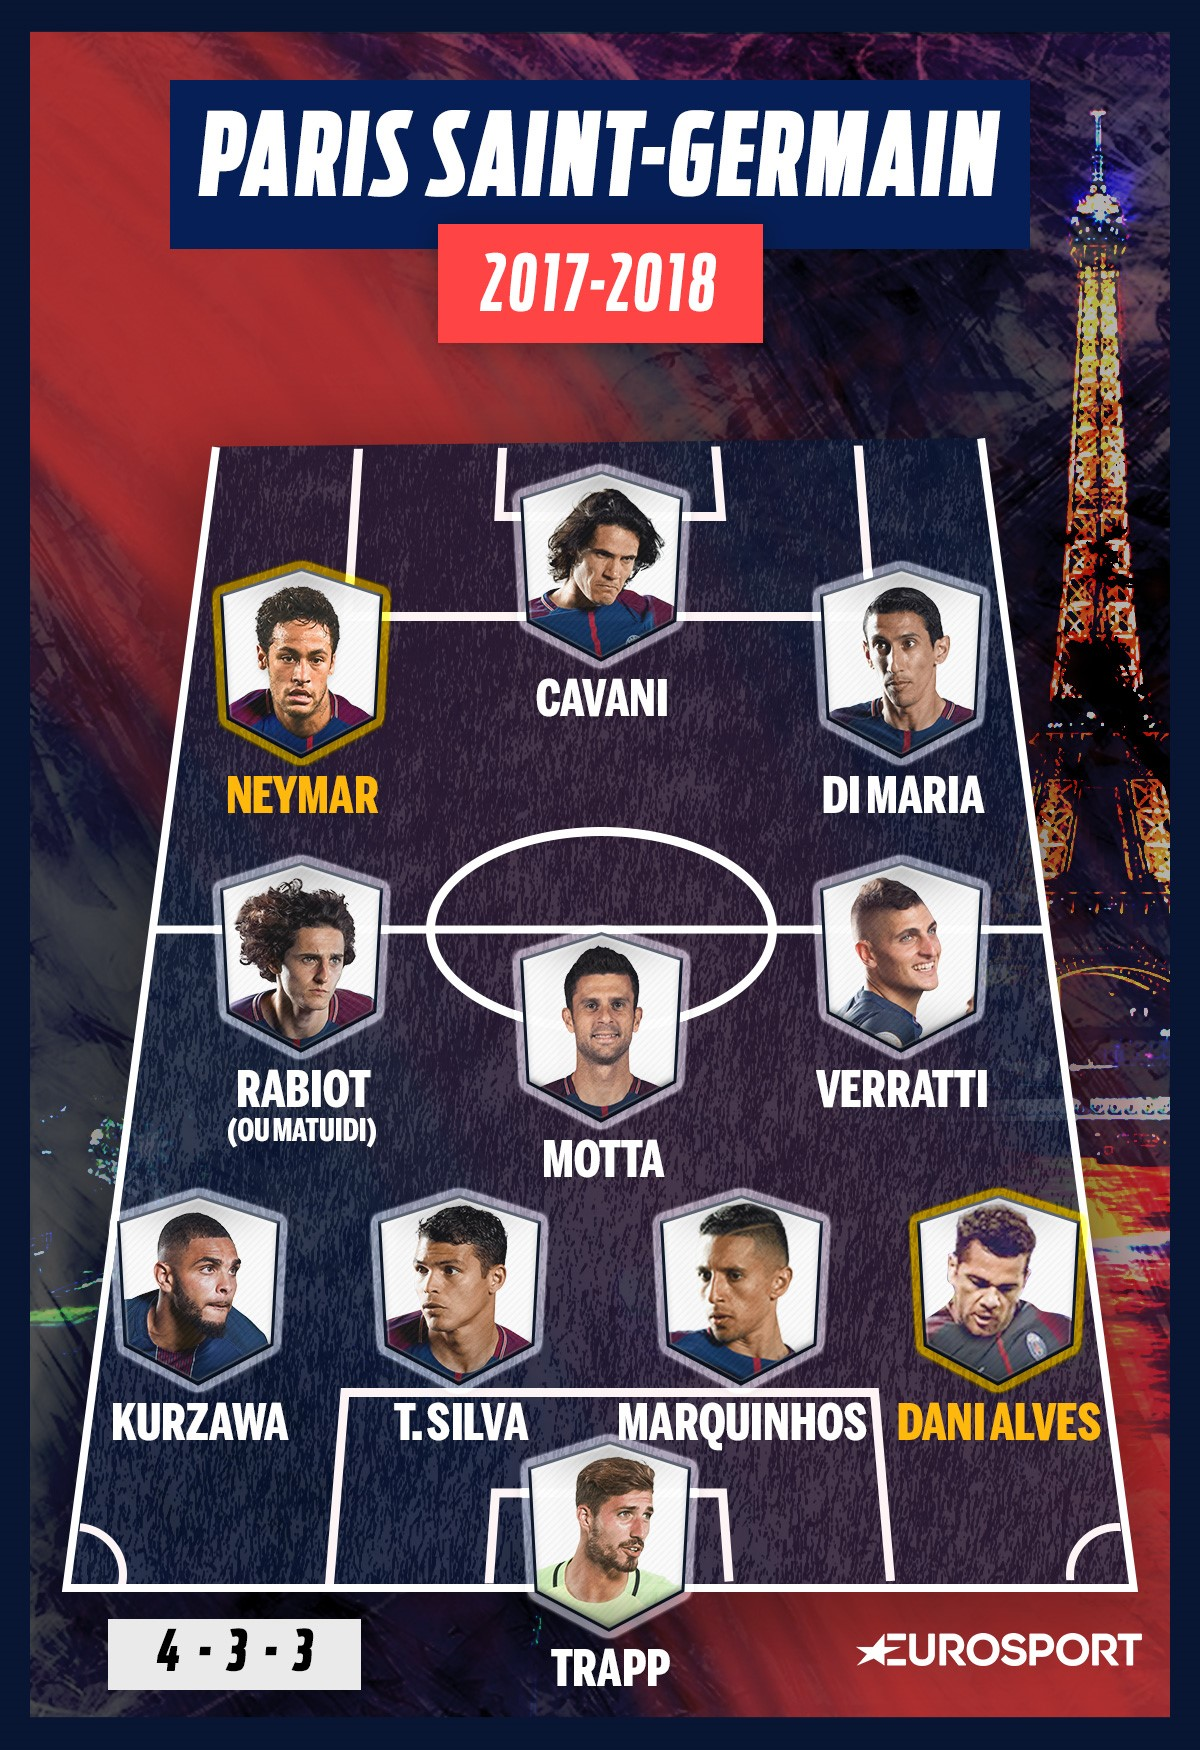 La compo possible du PSG en 4-3-3